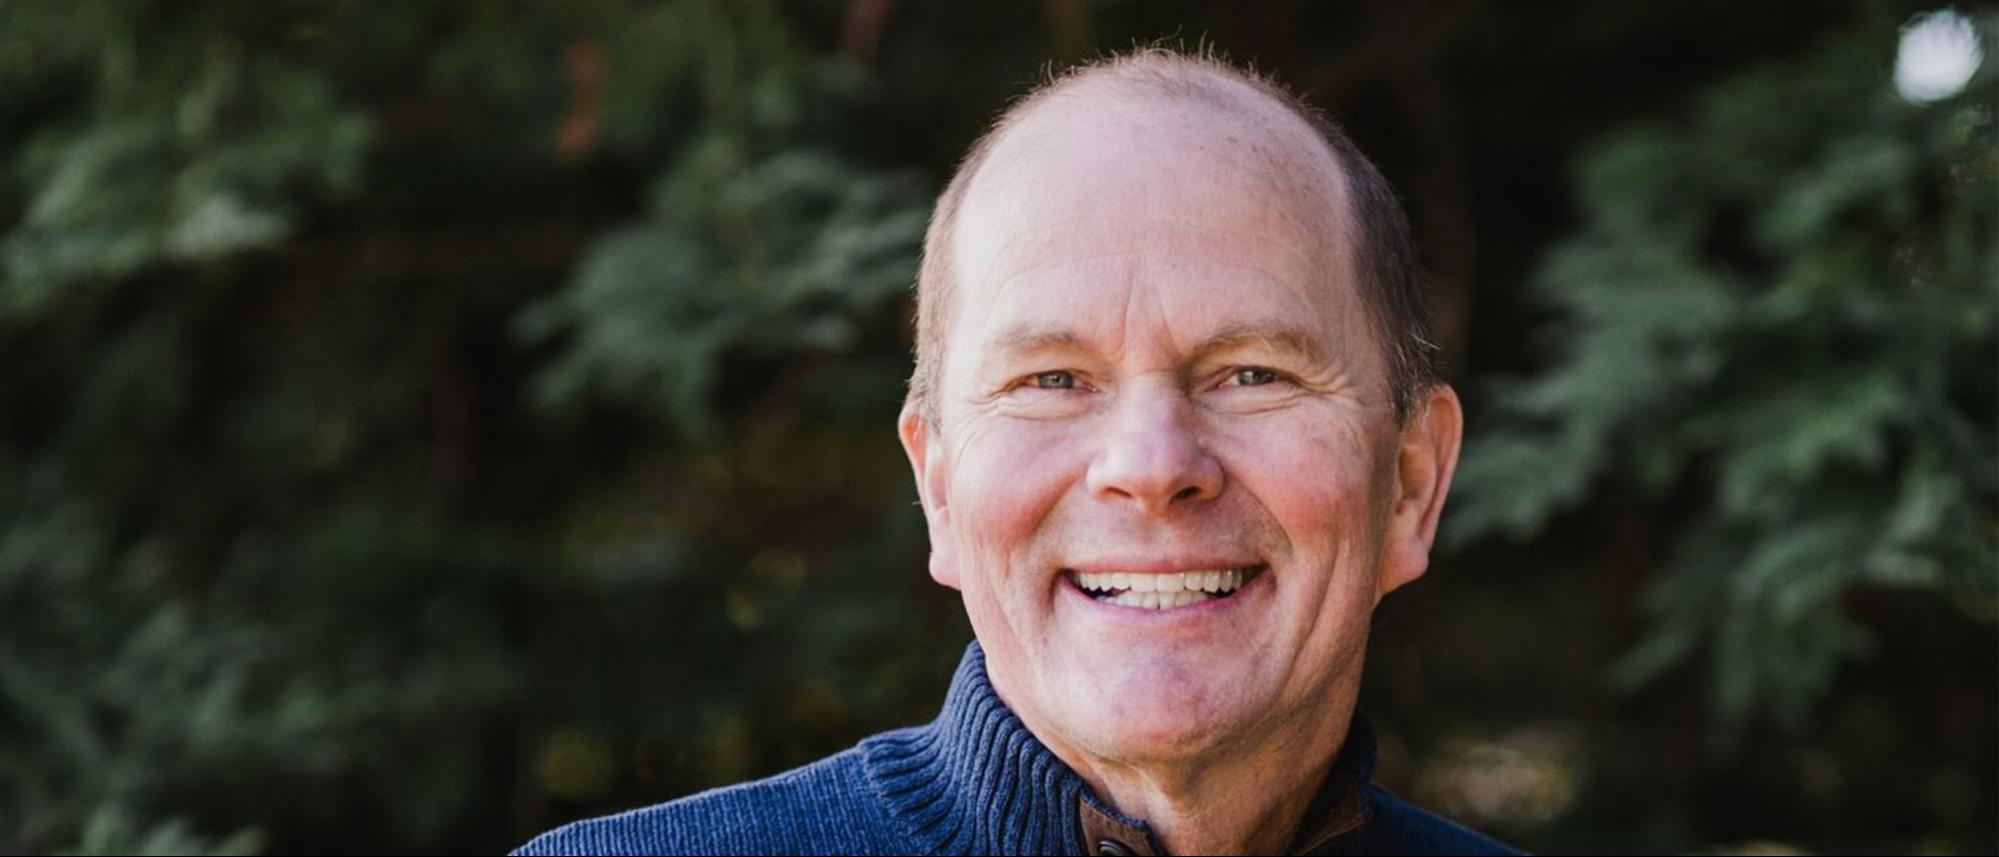 Steve Backlund is a leader, teacher and encourager, Igniting Hope wherever he goes.